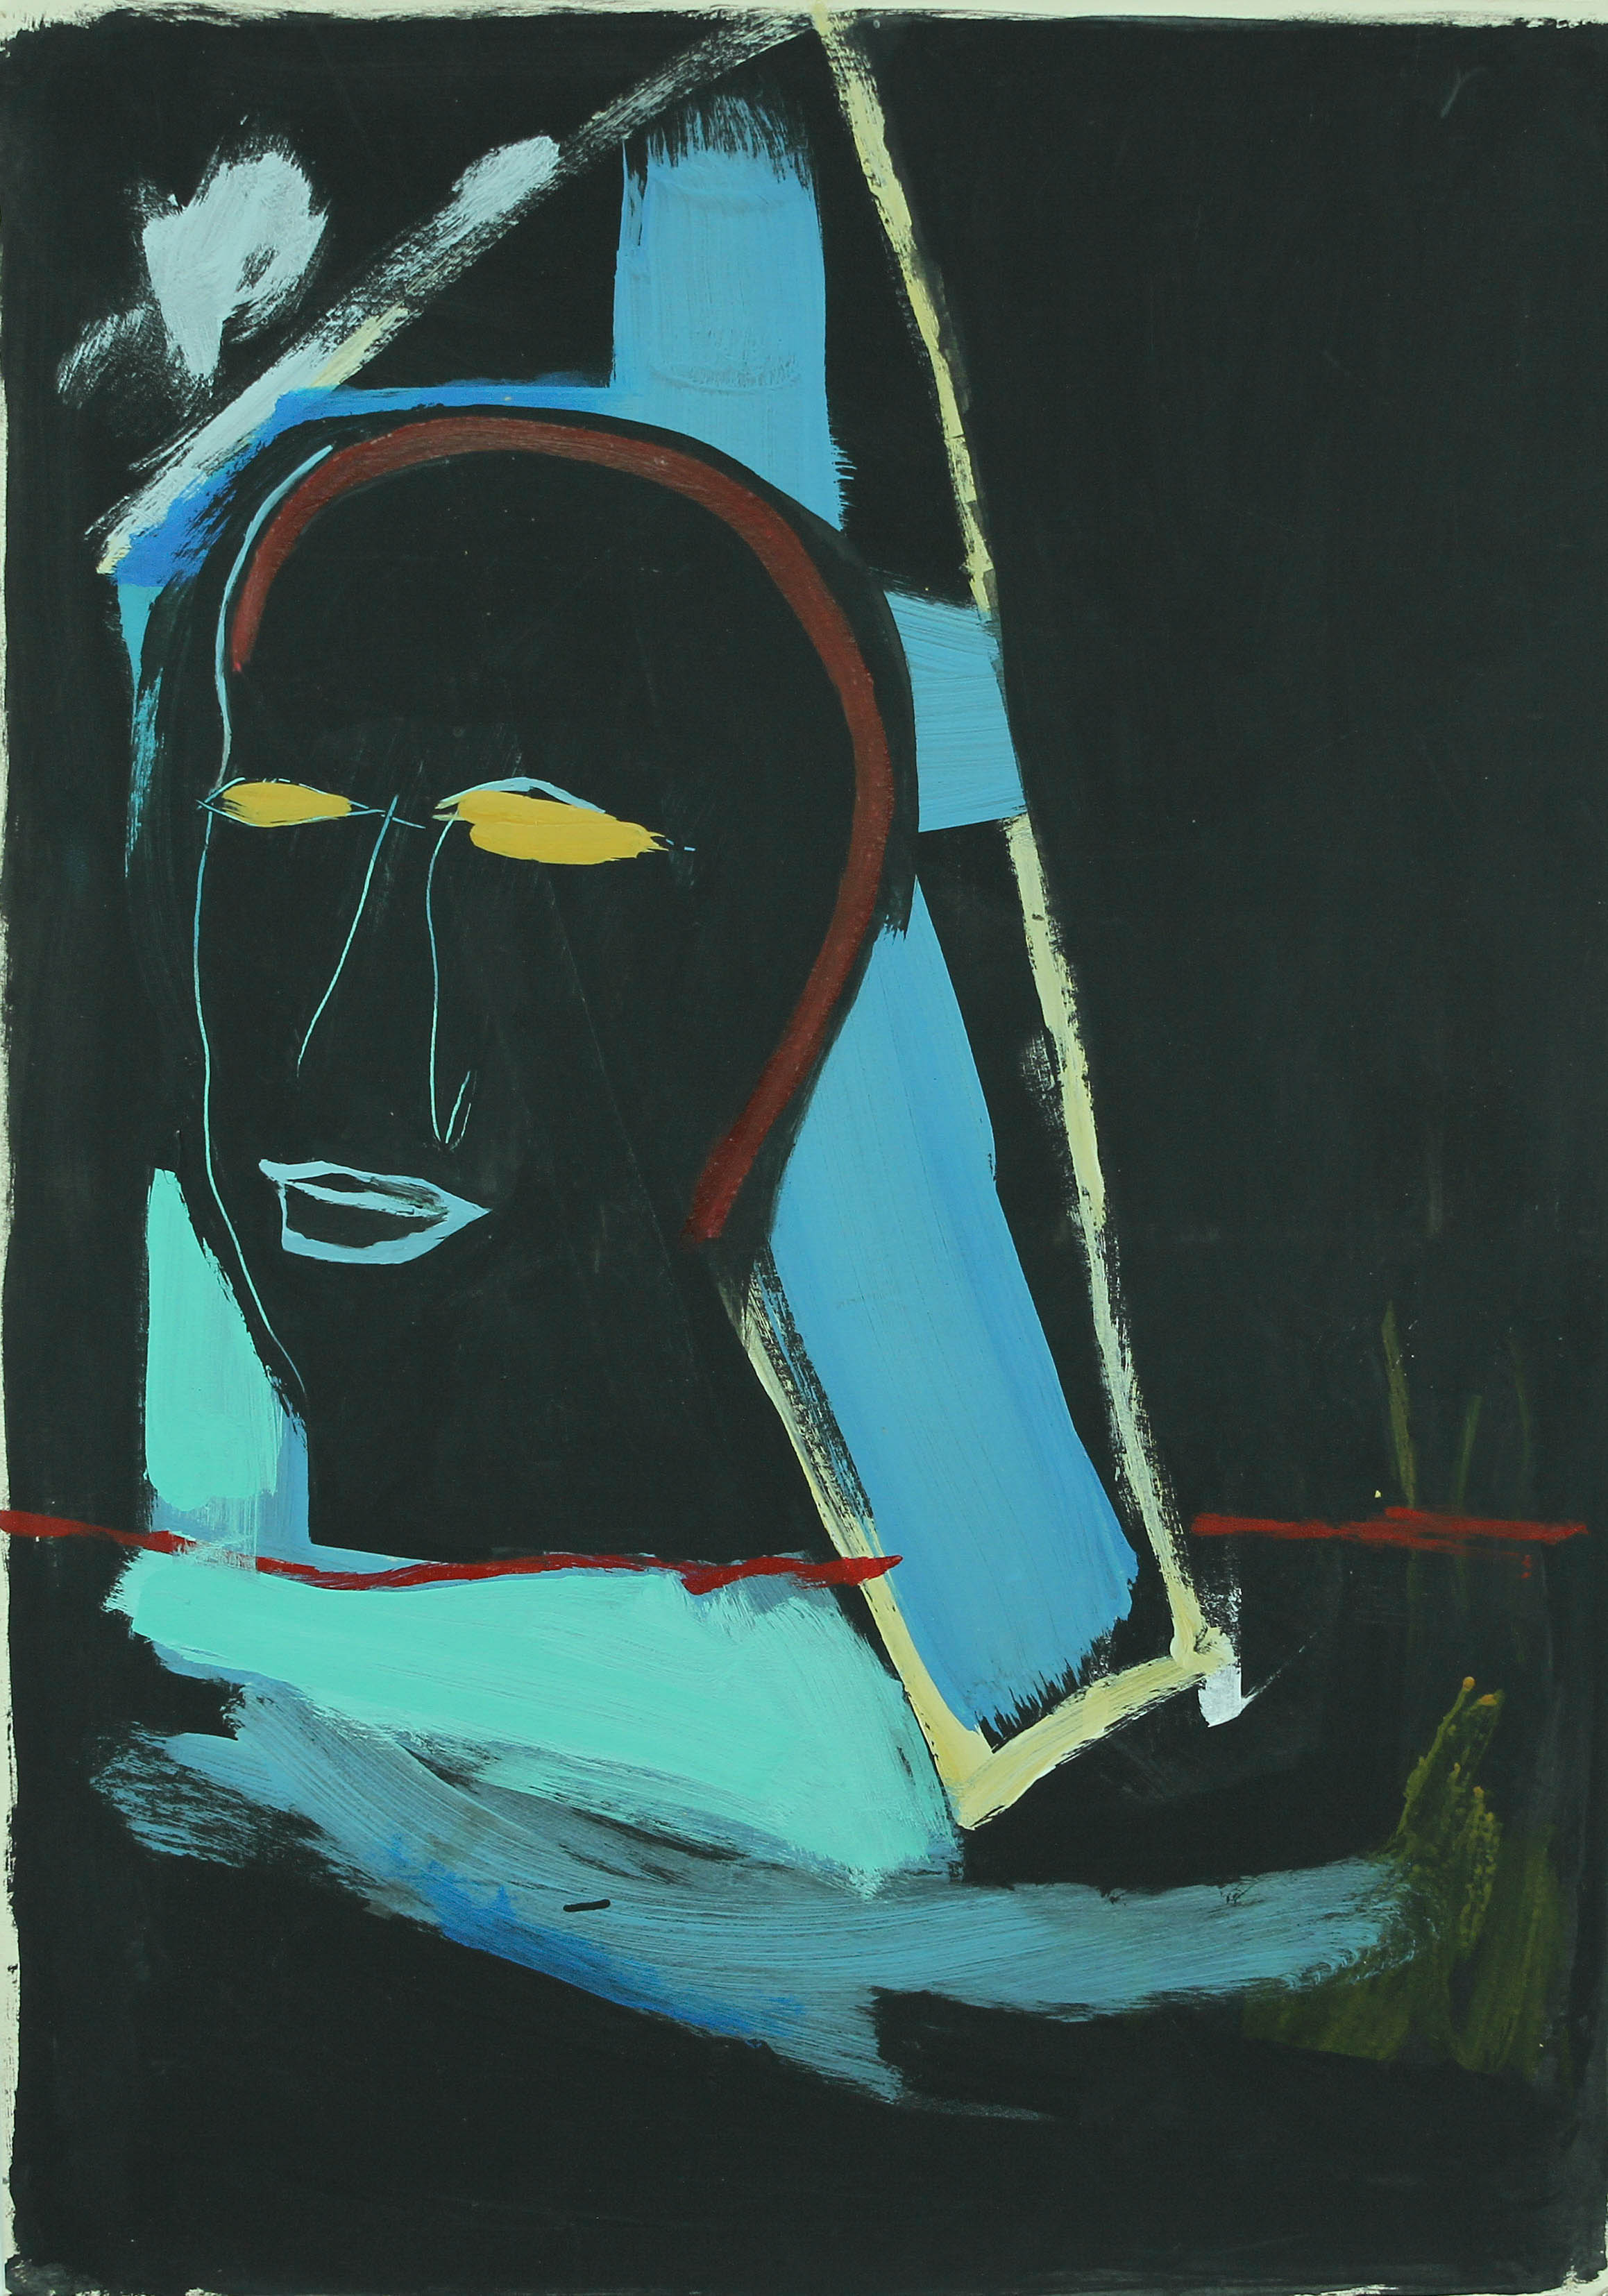 Untitled, 1989. Acrylic on paper, 27 x 19 in. (68 x 48 cm.)